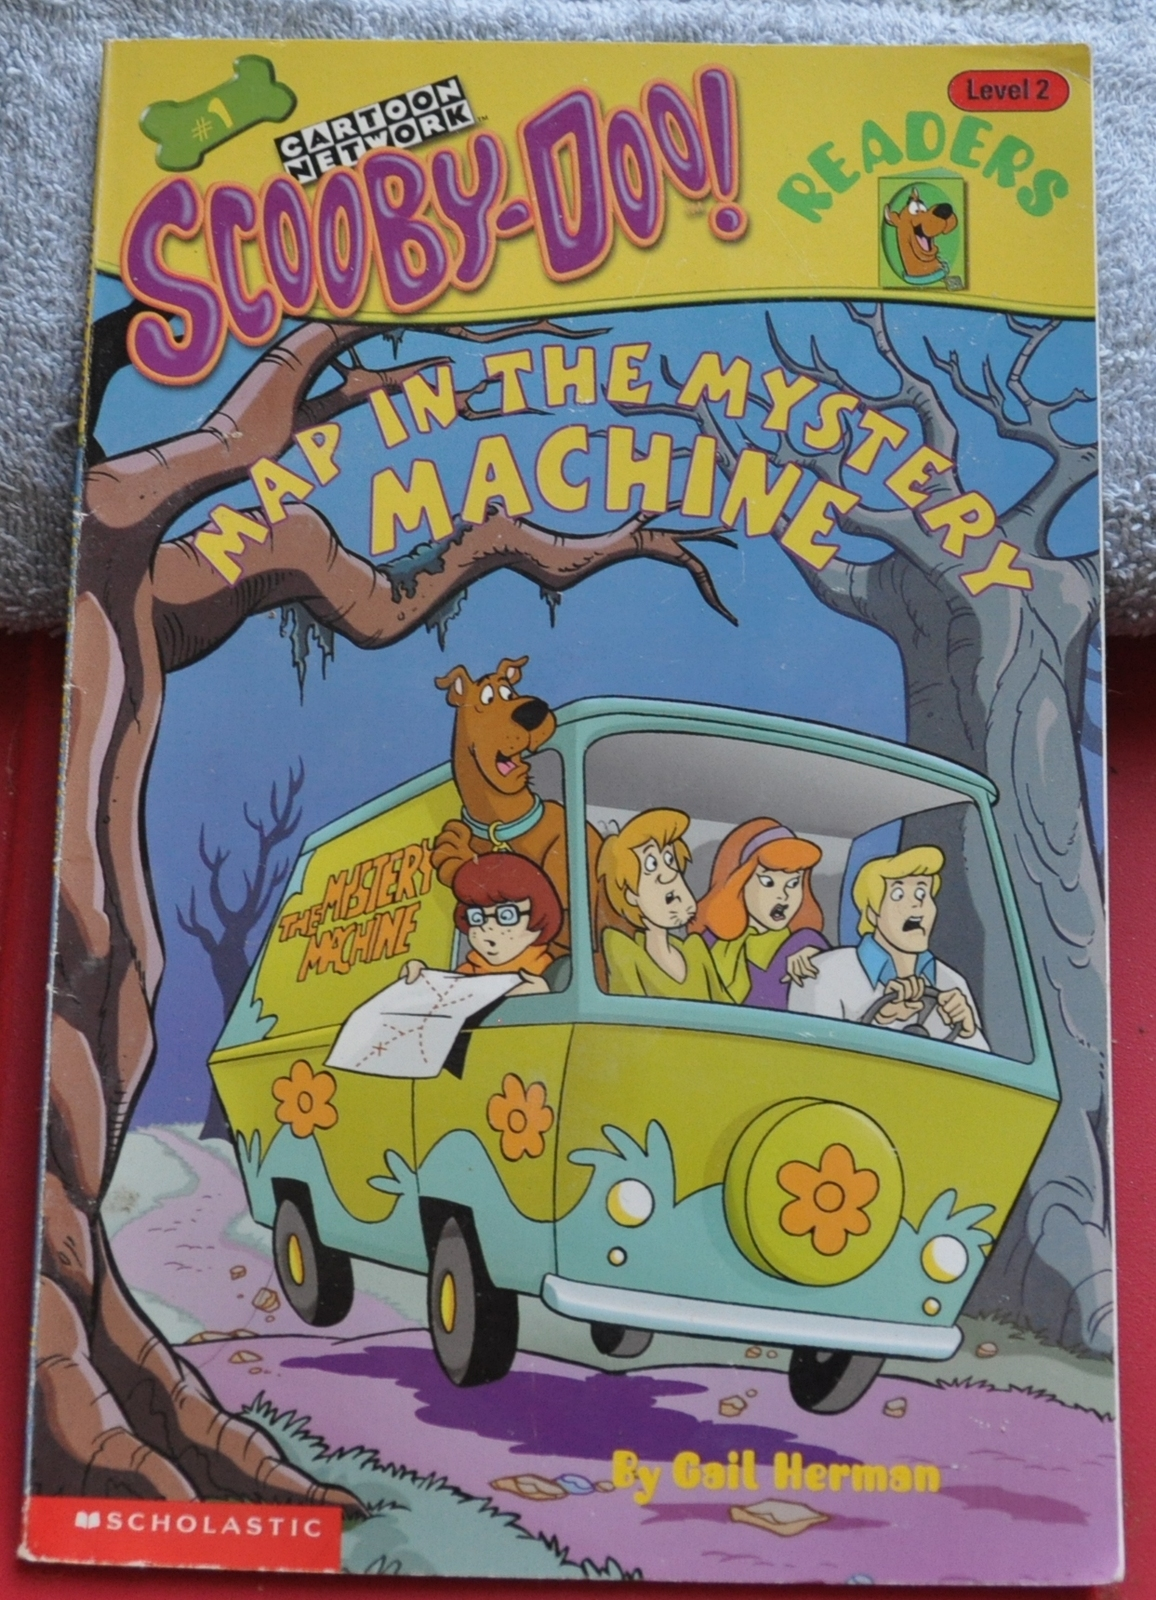 Scooby-Doo Map in the Mystery Machine Level and 50 similar items on scooby doo ruh-roh, scooby doo the mystery car, scooby doo adventures,